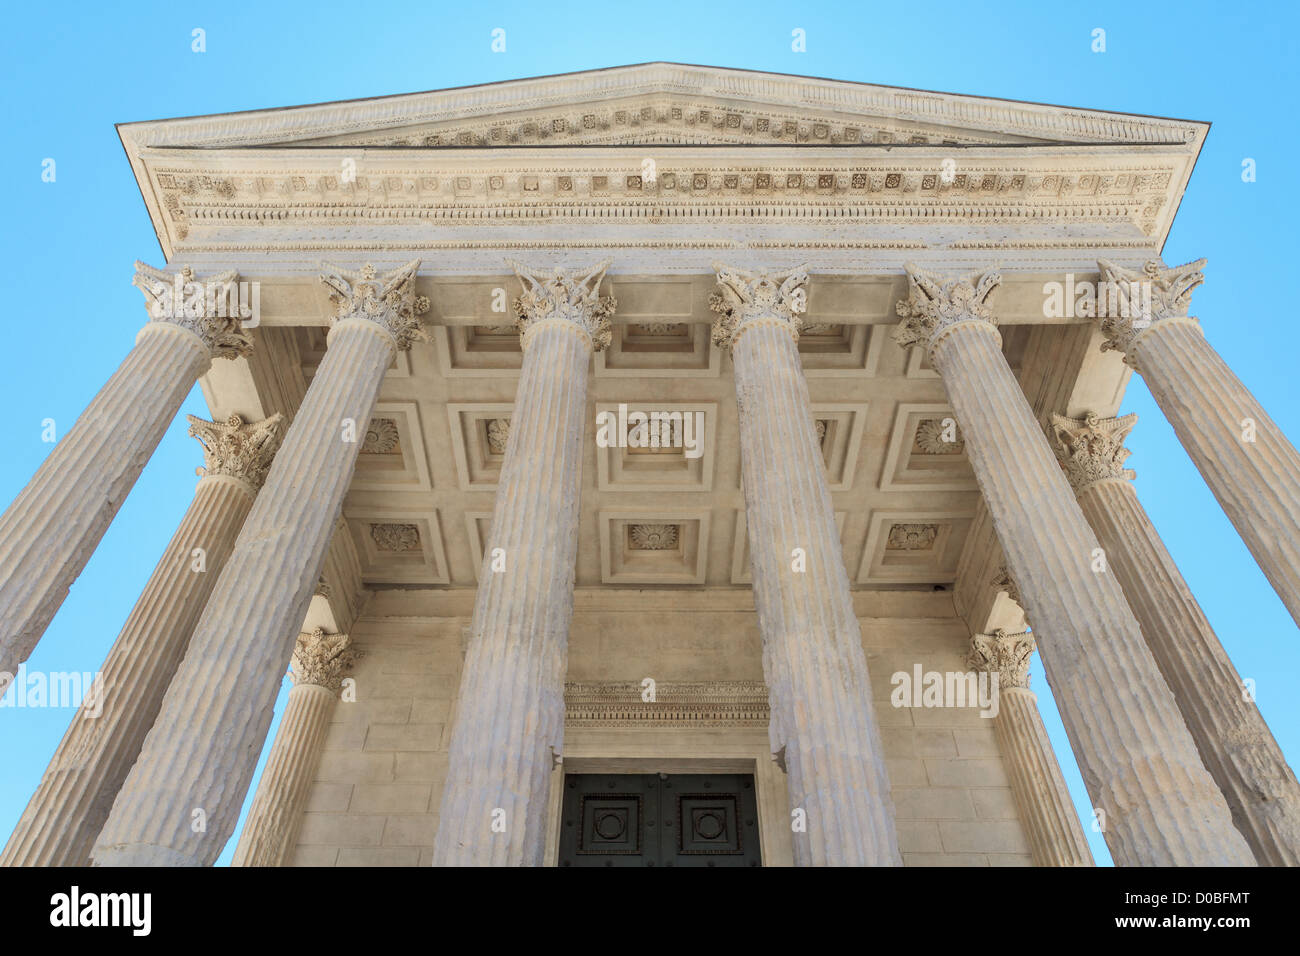 Maison carree a nimes beautiful roman temple maison - Maison carree nimes ...